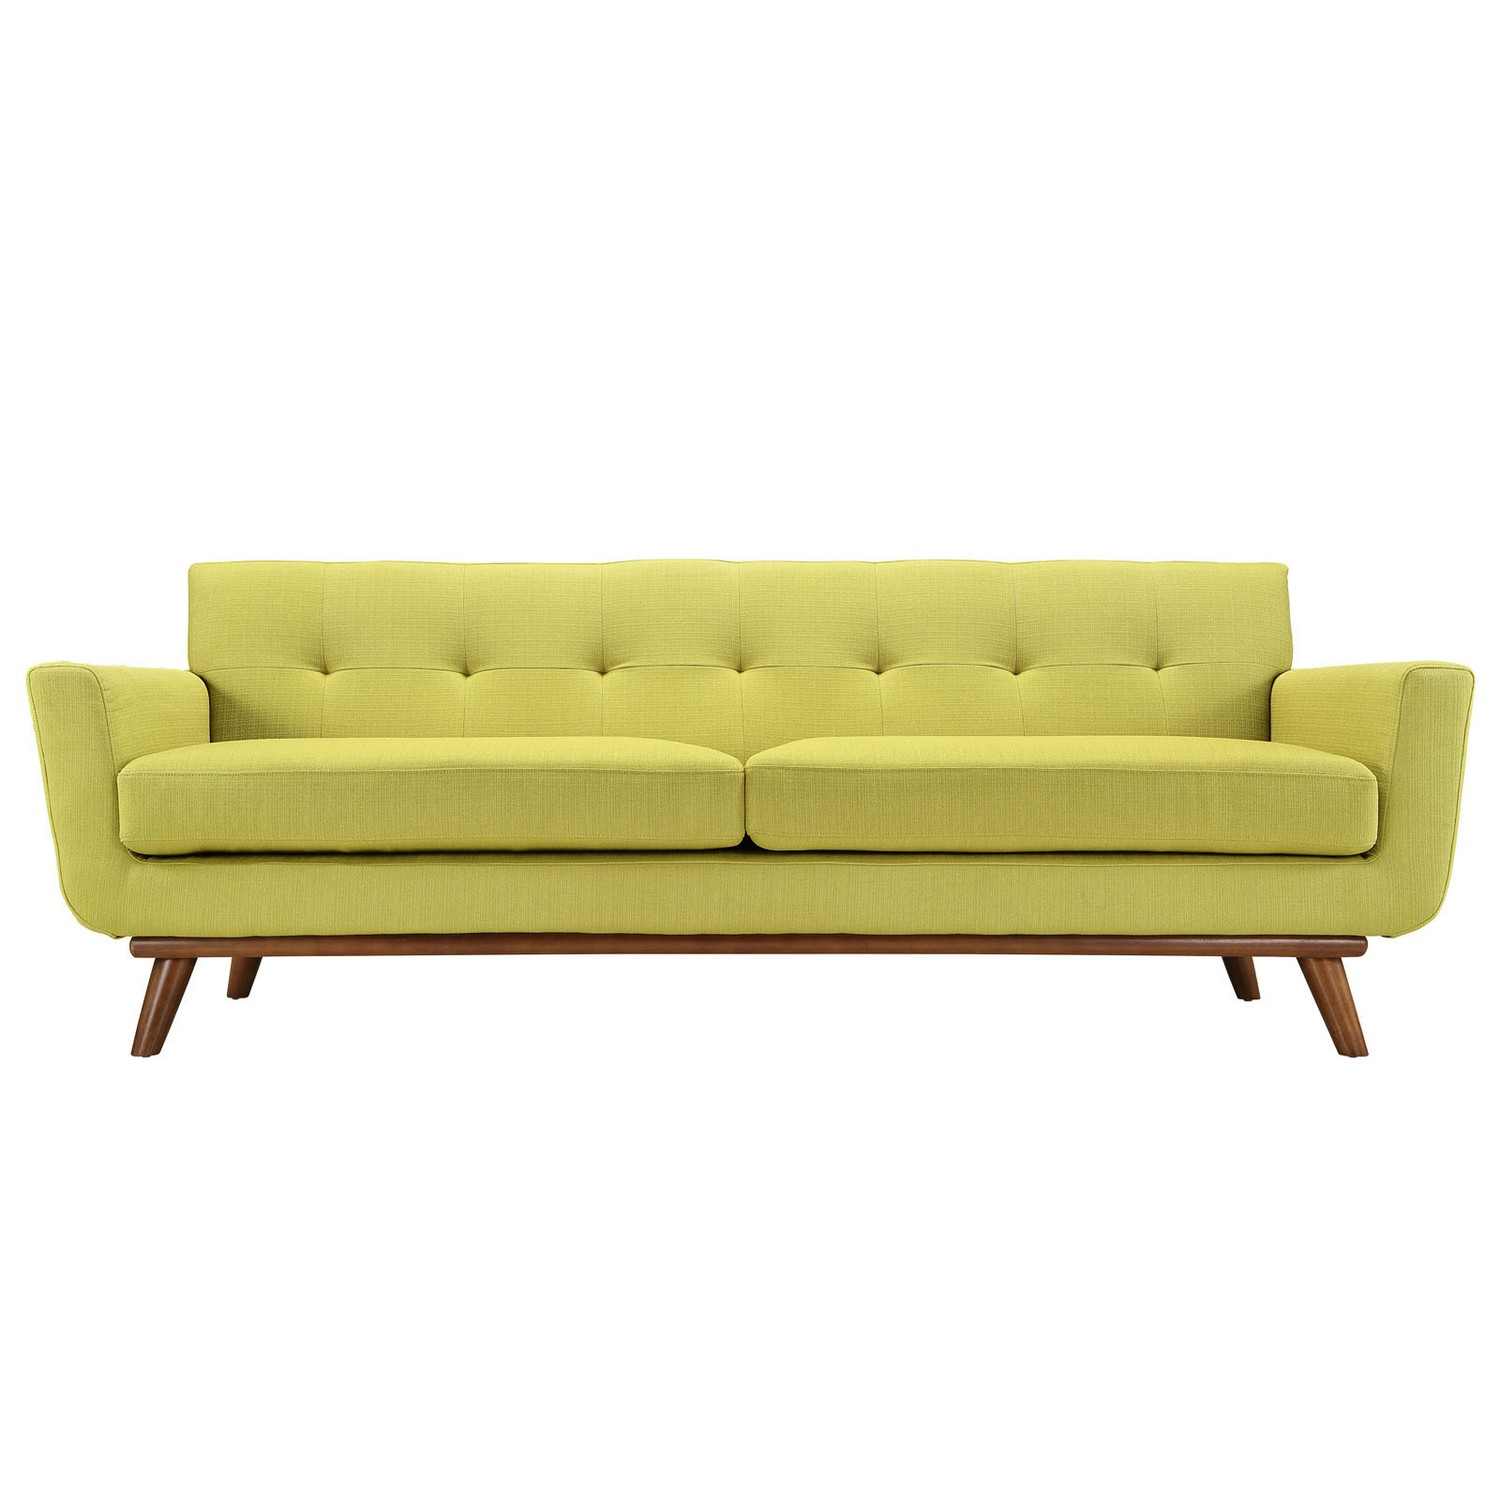 Modway Engage Upholstered Sofa Wheatgrass MW EEI 1180 WHE at